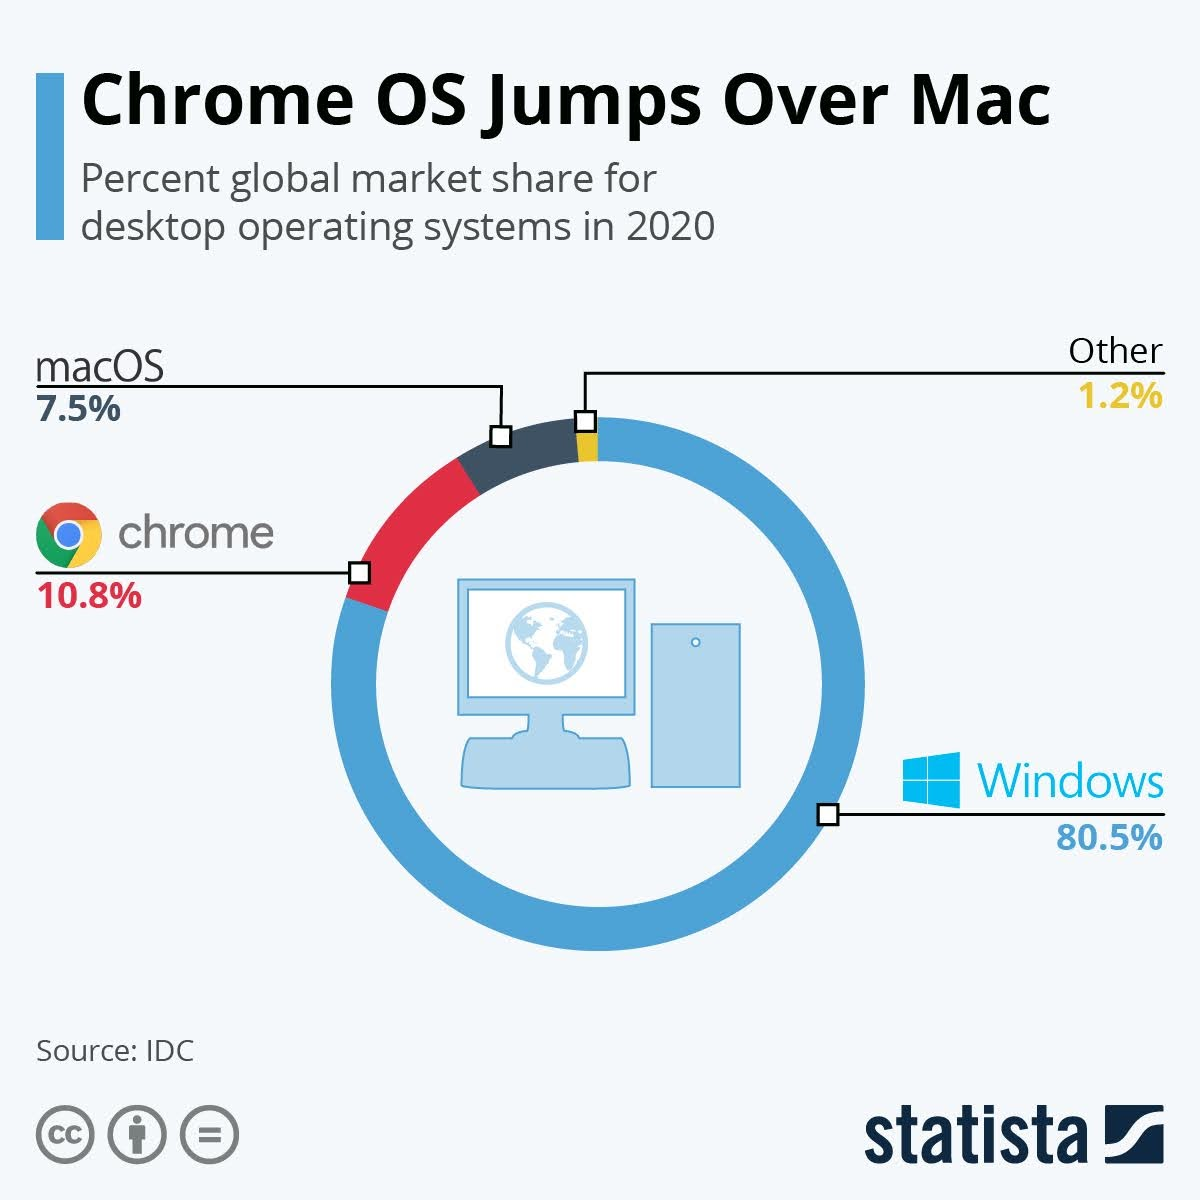 chrome-os-jumps-over-mac-infographic